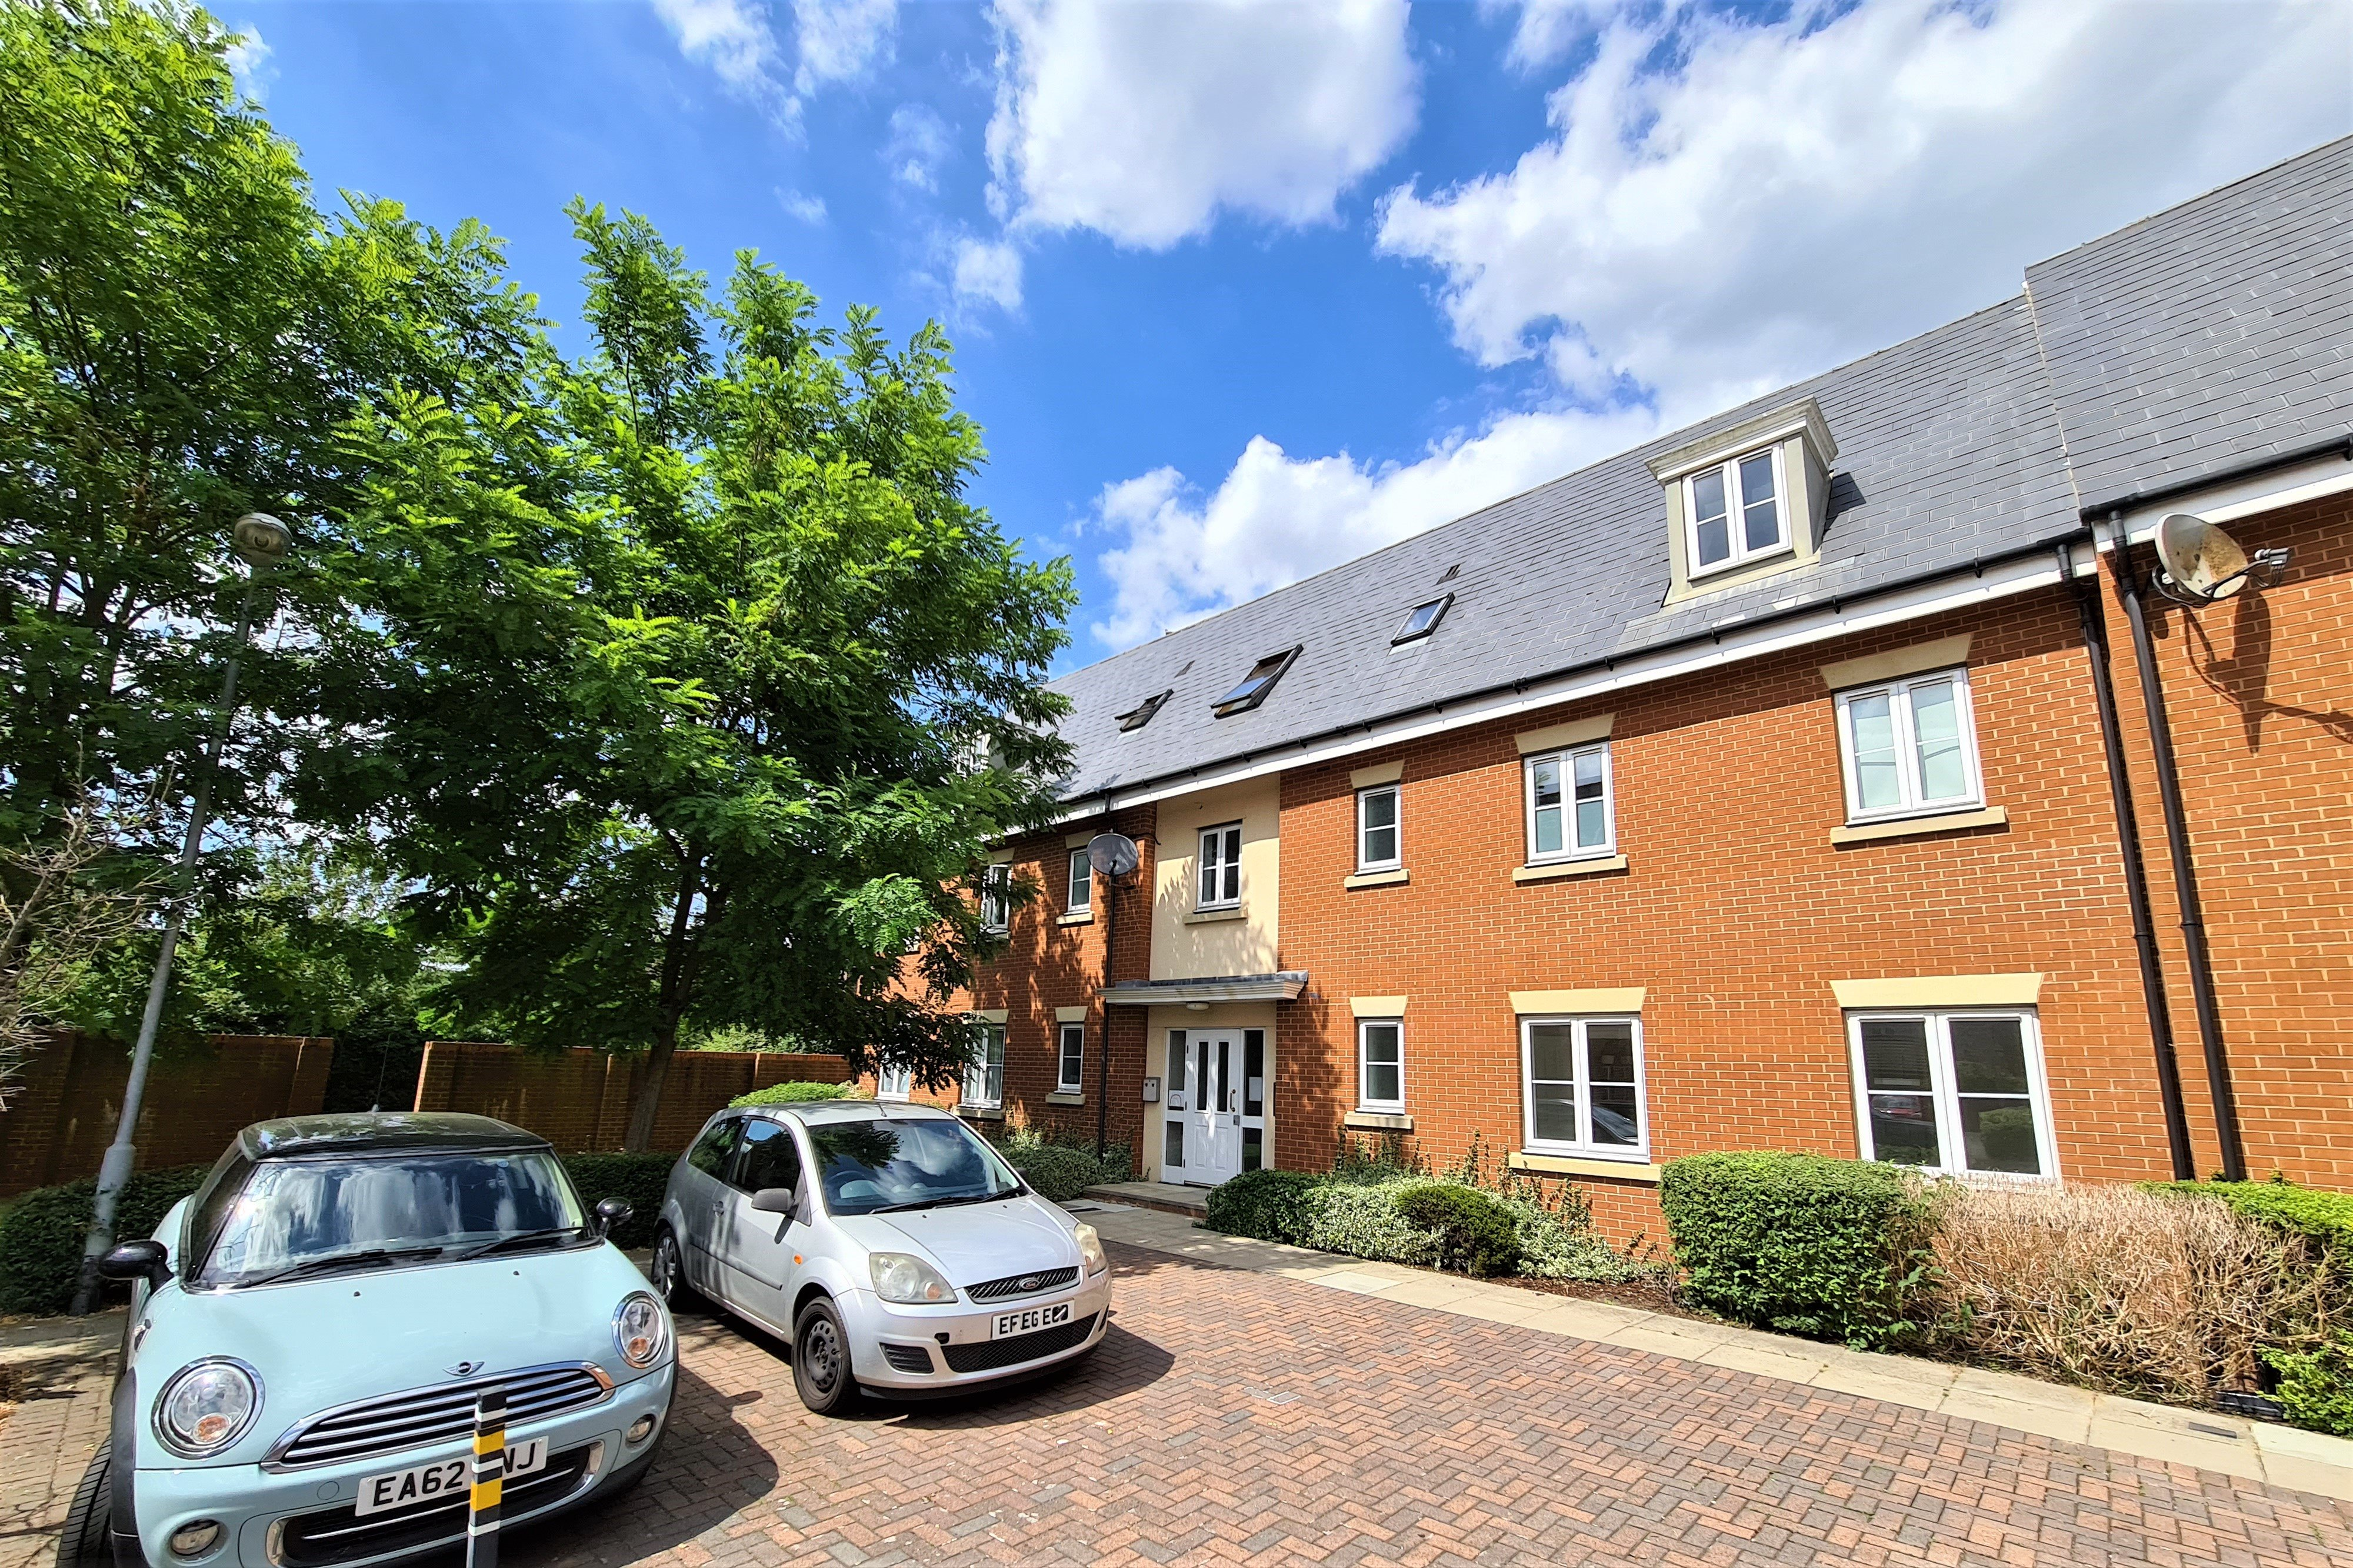 2 bed flat for sale in Priory Chase, Rayleigh, SS6